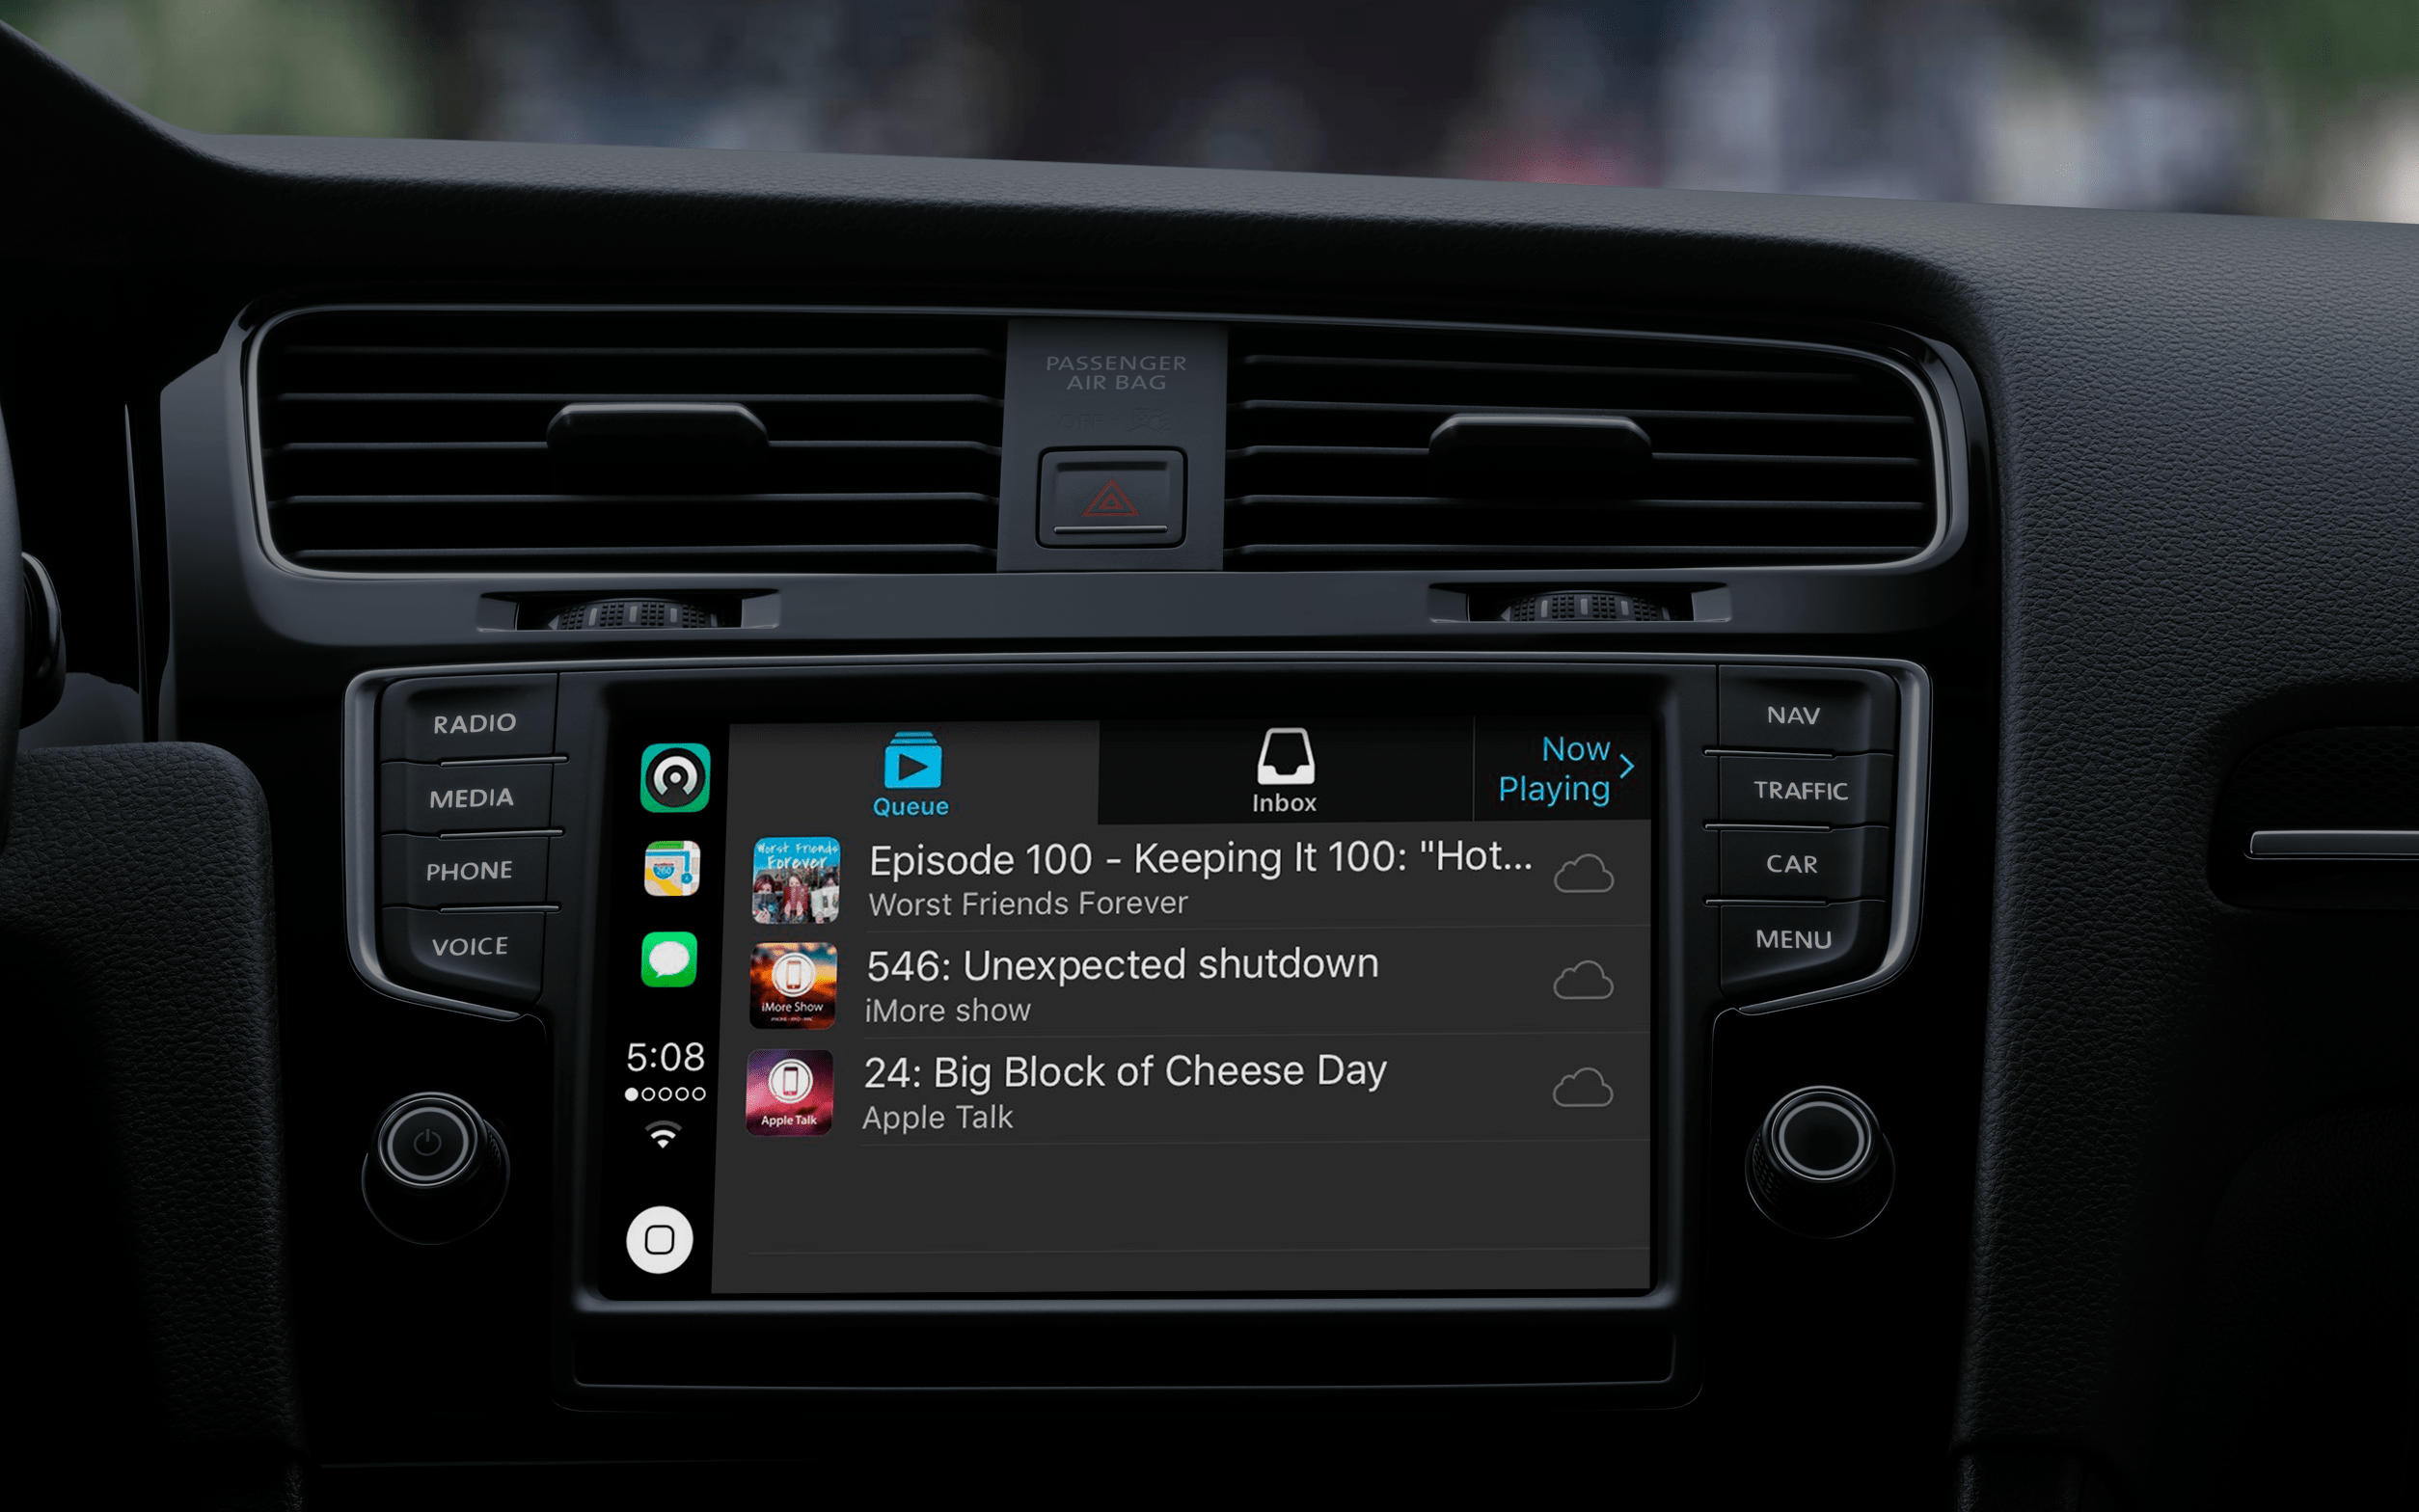 Apps supported by apple CarPlay: Castro